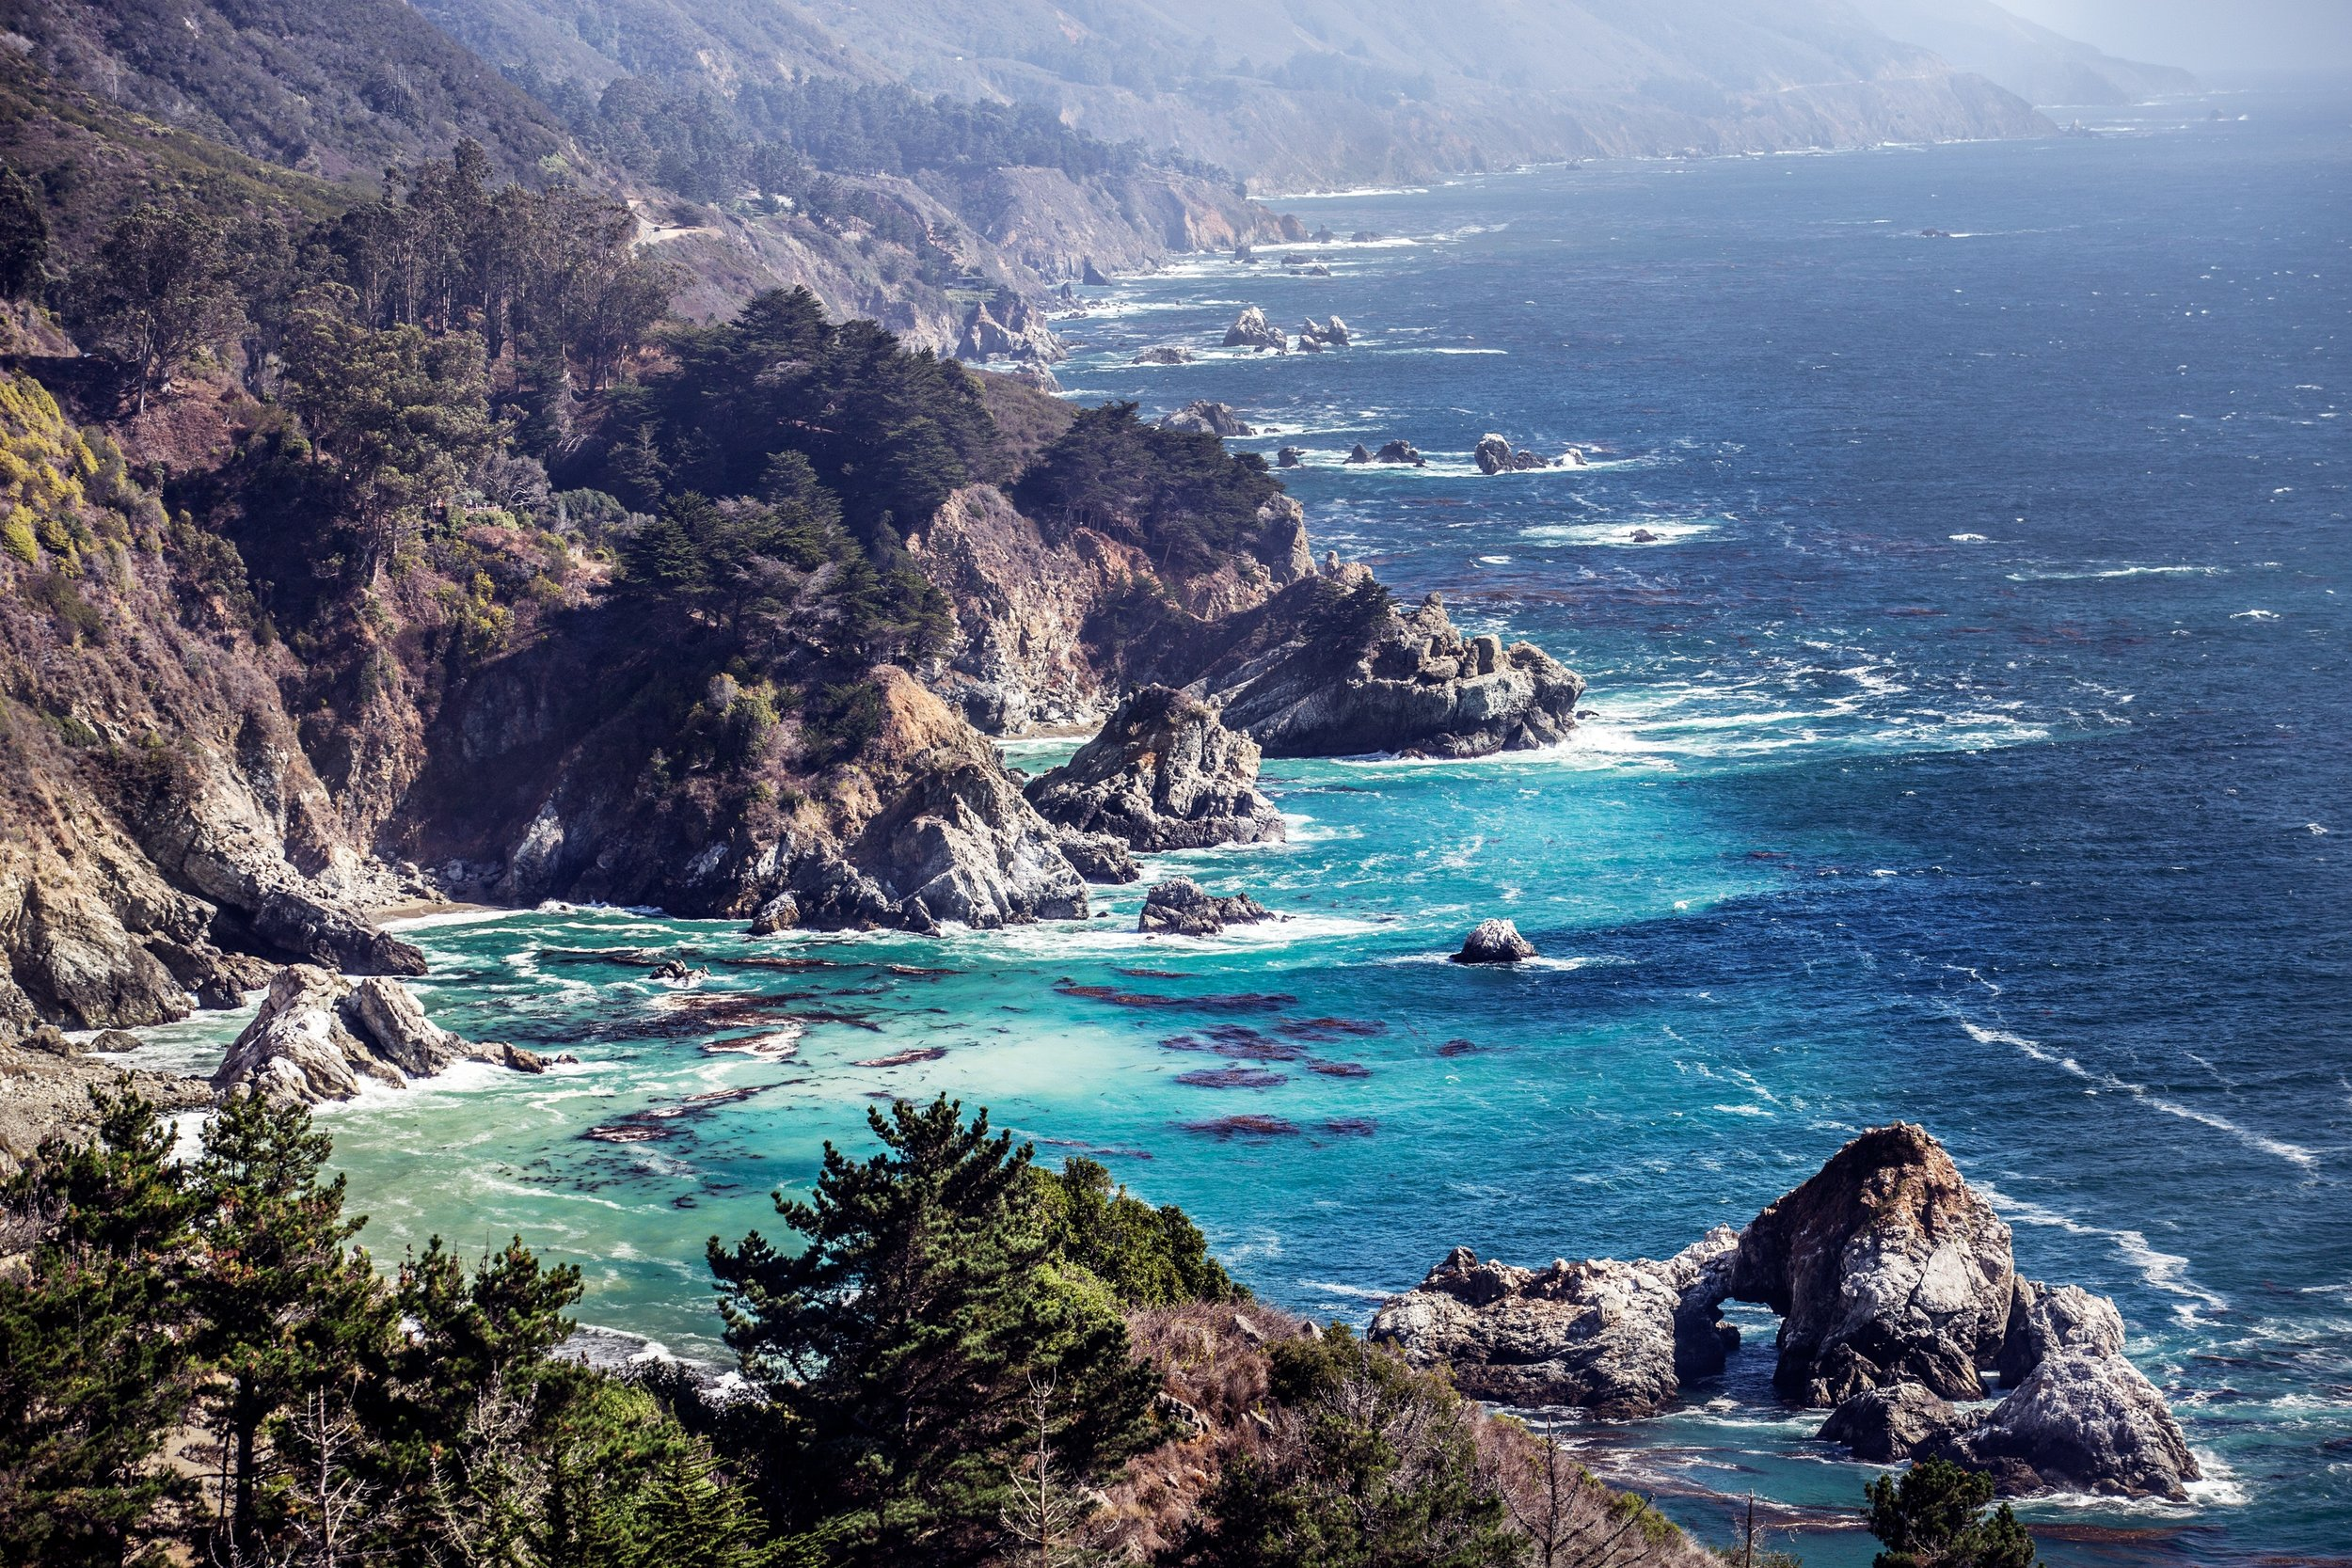 Why being near the ocean can make you calmer and more creative - Huffington Post, September 2014